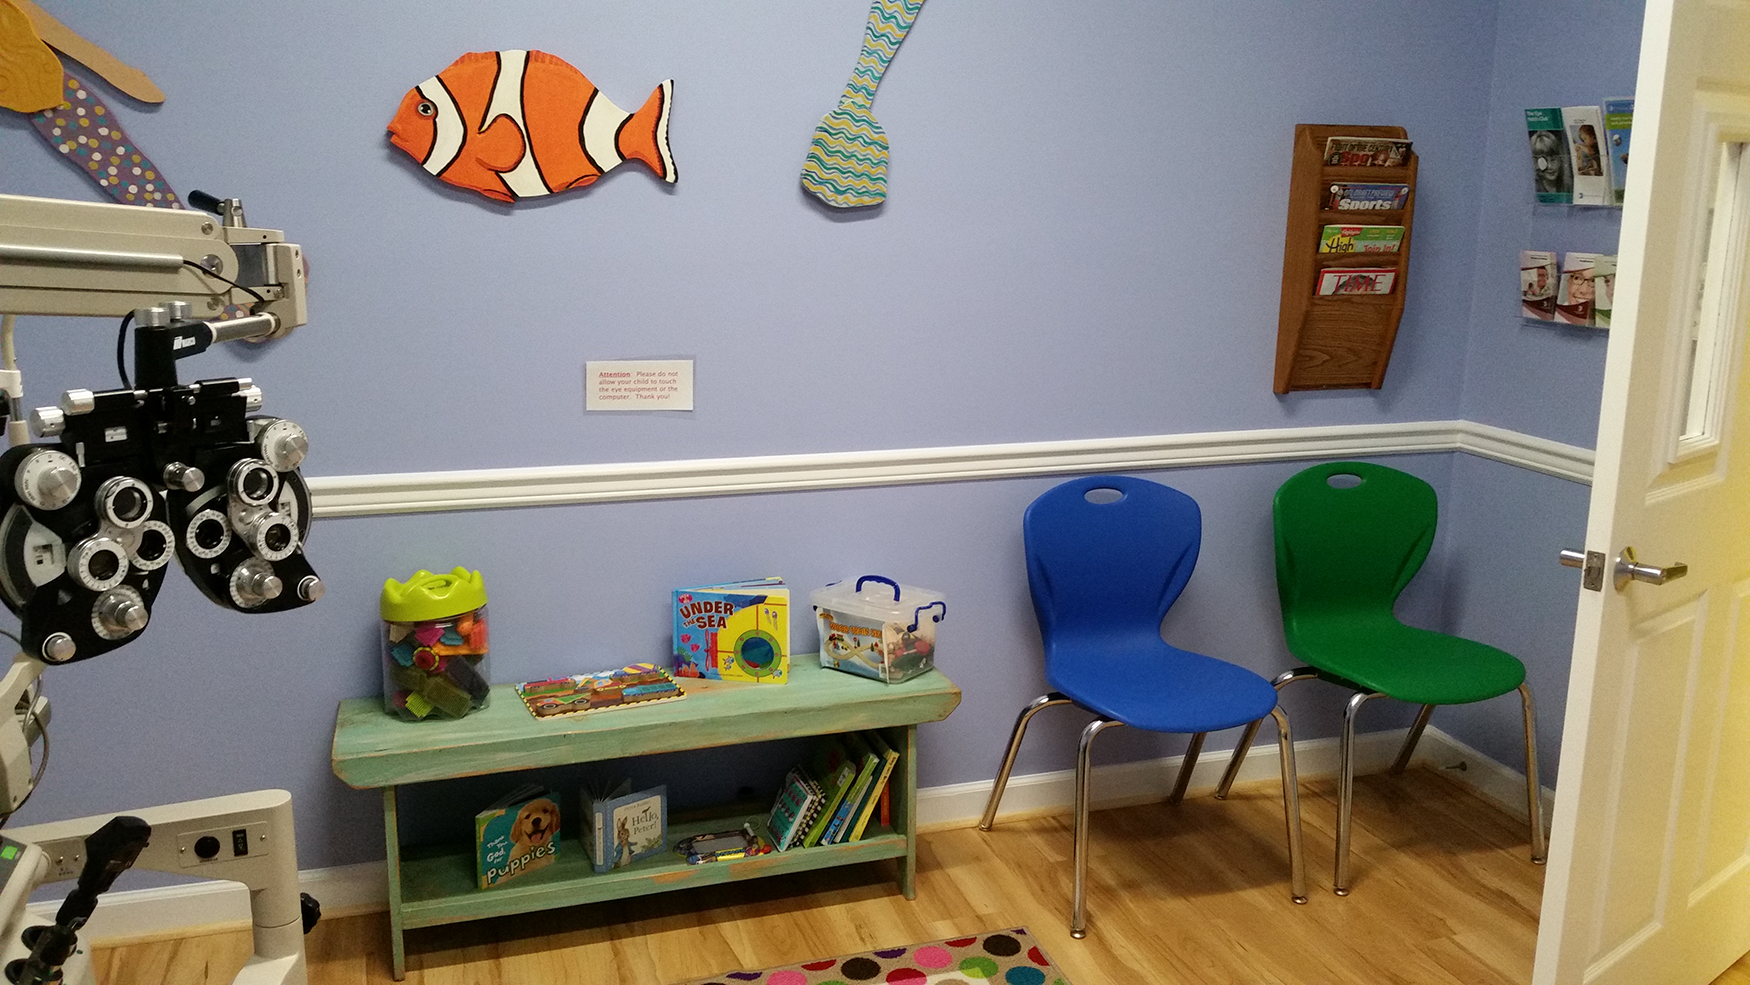 'Children want to feel relaxed in a comfortable atmosphere,' says Dr. Cathy Doty of SpecialEYES Pediatric Vision Clinic.